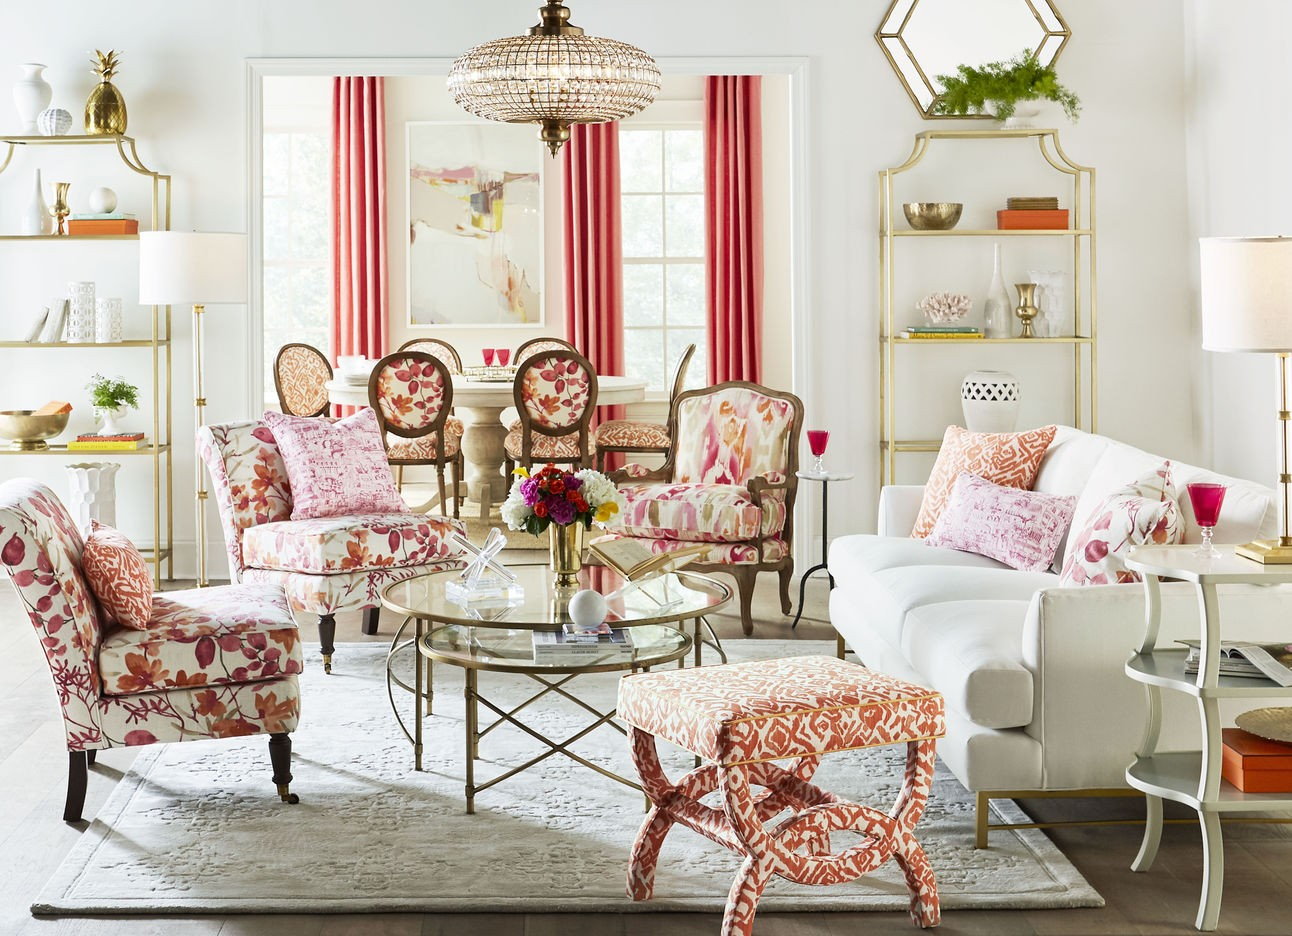 BALLARD DESIGNS: Take Up to 20% Off All Indoor Furniture & Decor. Hurry, Sale Ends 2/1!